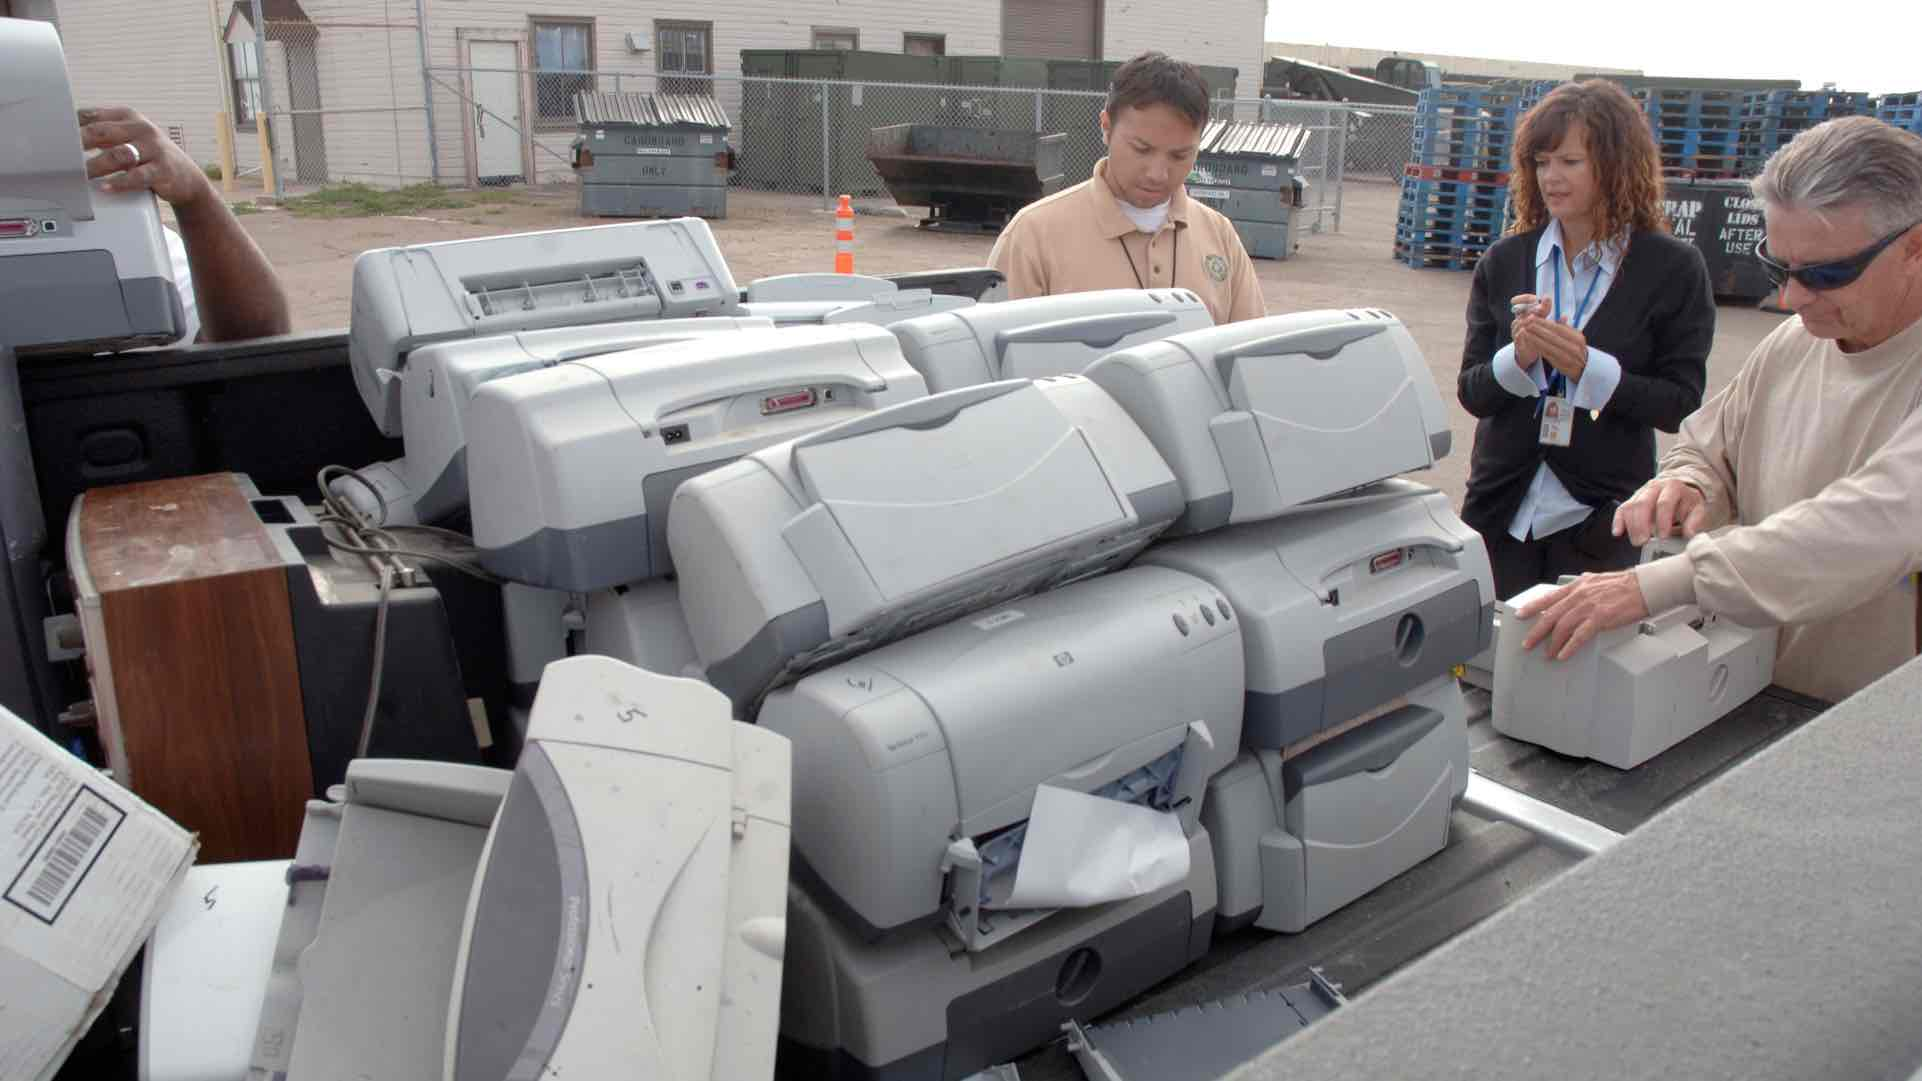 Pile of printers at an e-waste collection event